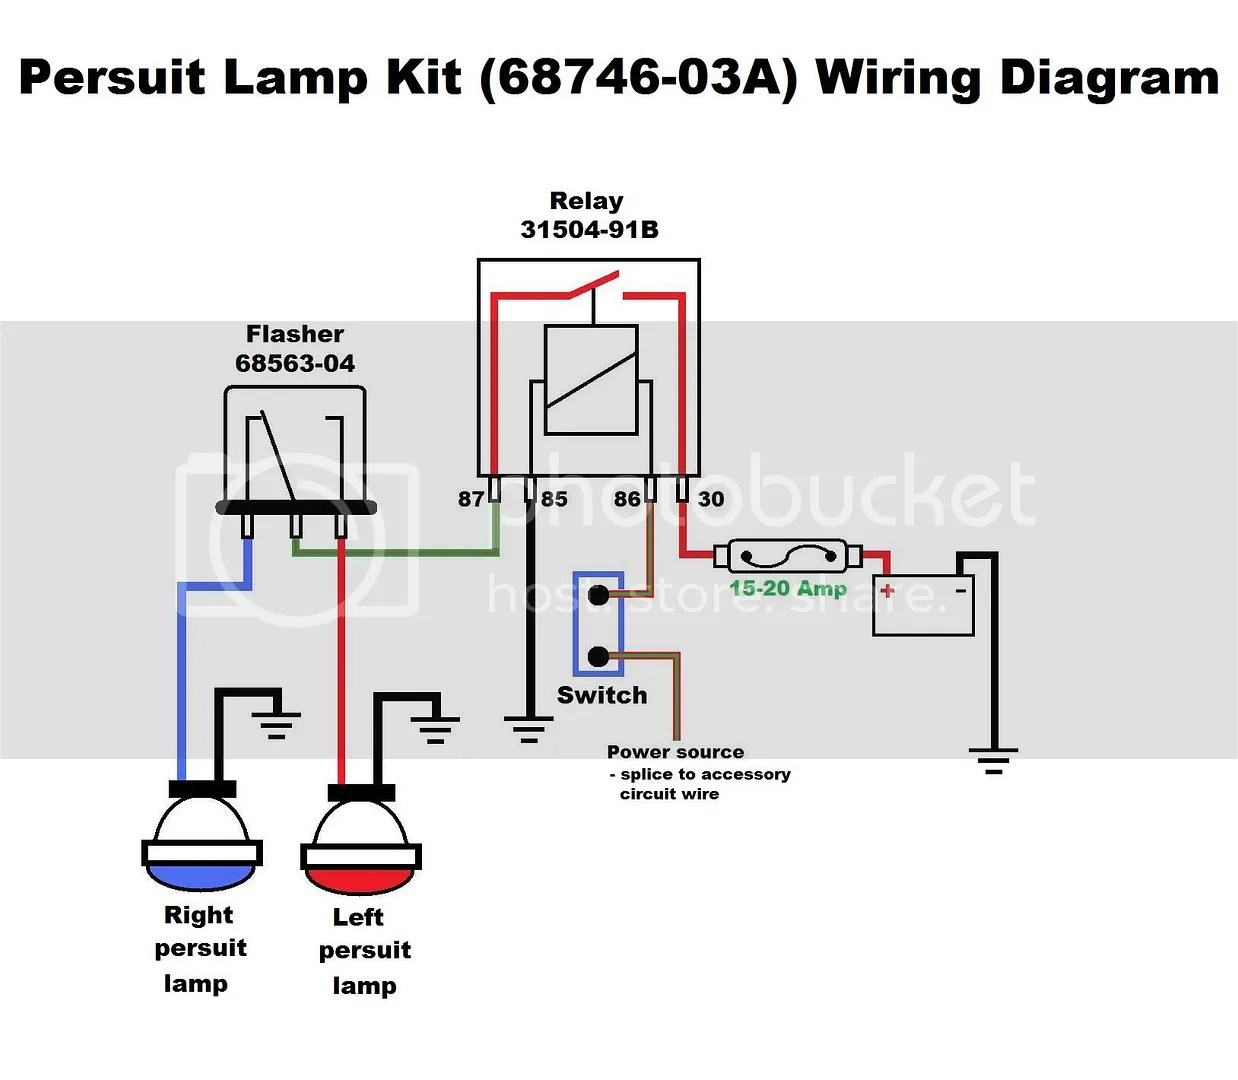 hight resolution of 87a relay wiring diagram wiring diagram detailed harley chopper wiring diagram harley davidson headlight relay wiring diagram